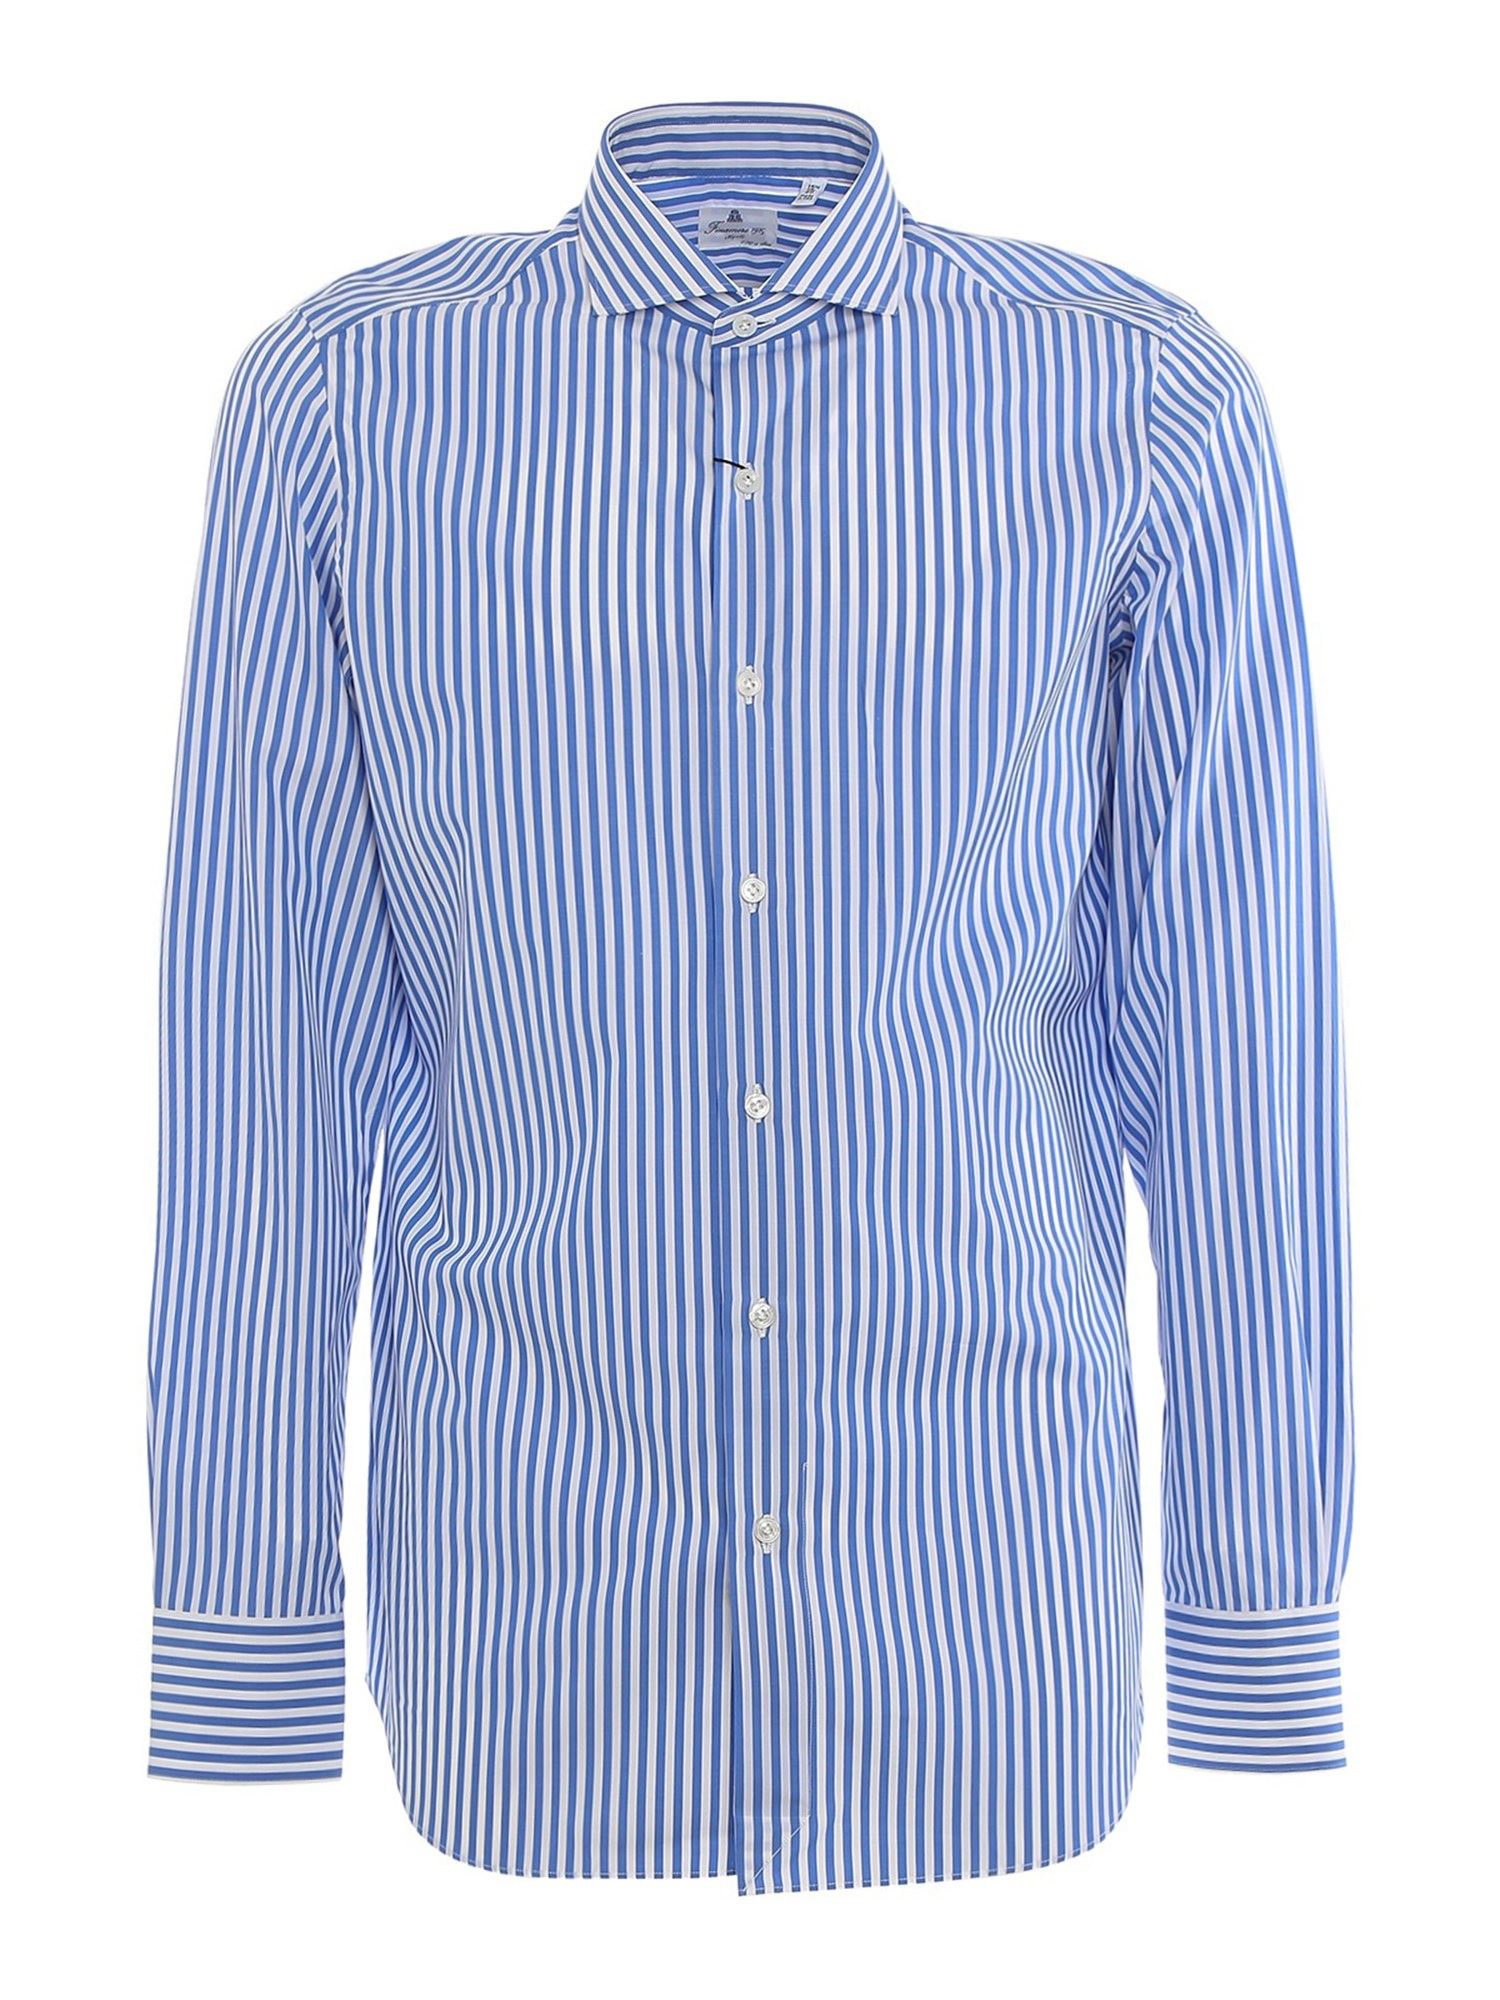 Finamore 1925 Cottons STRIPED COTTON SHIRT IN LIGHT BLUE AND WHITE